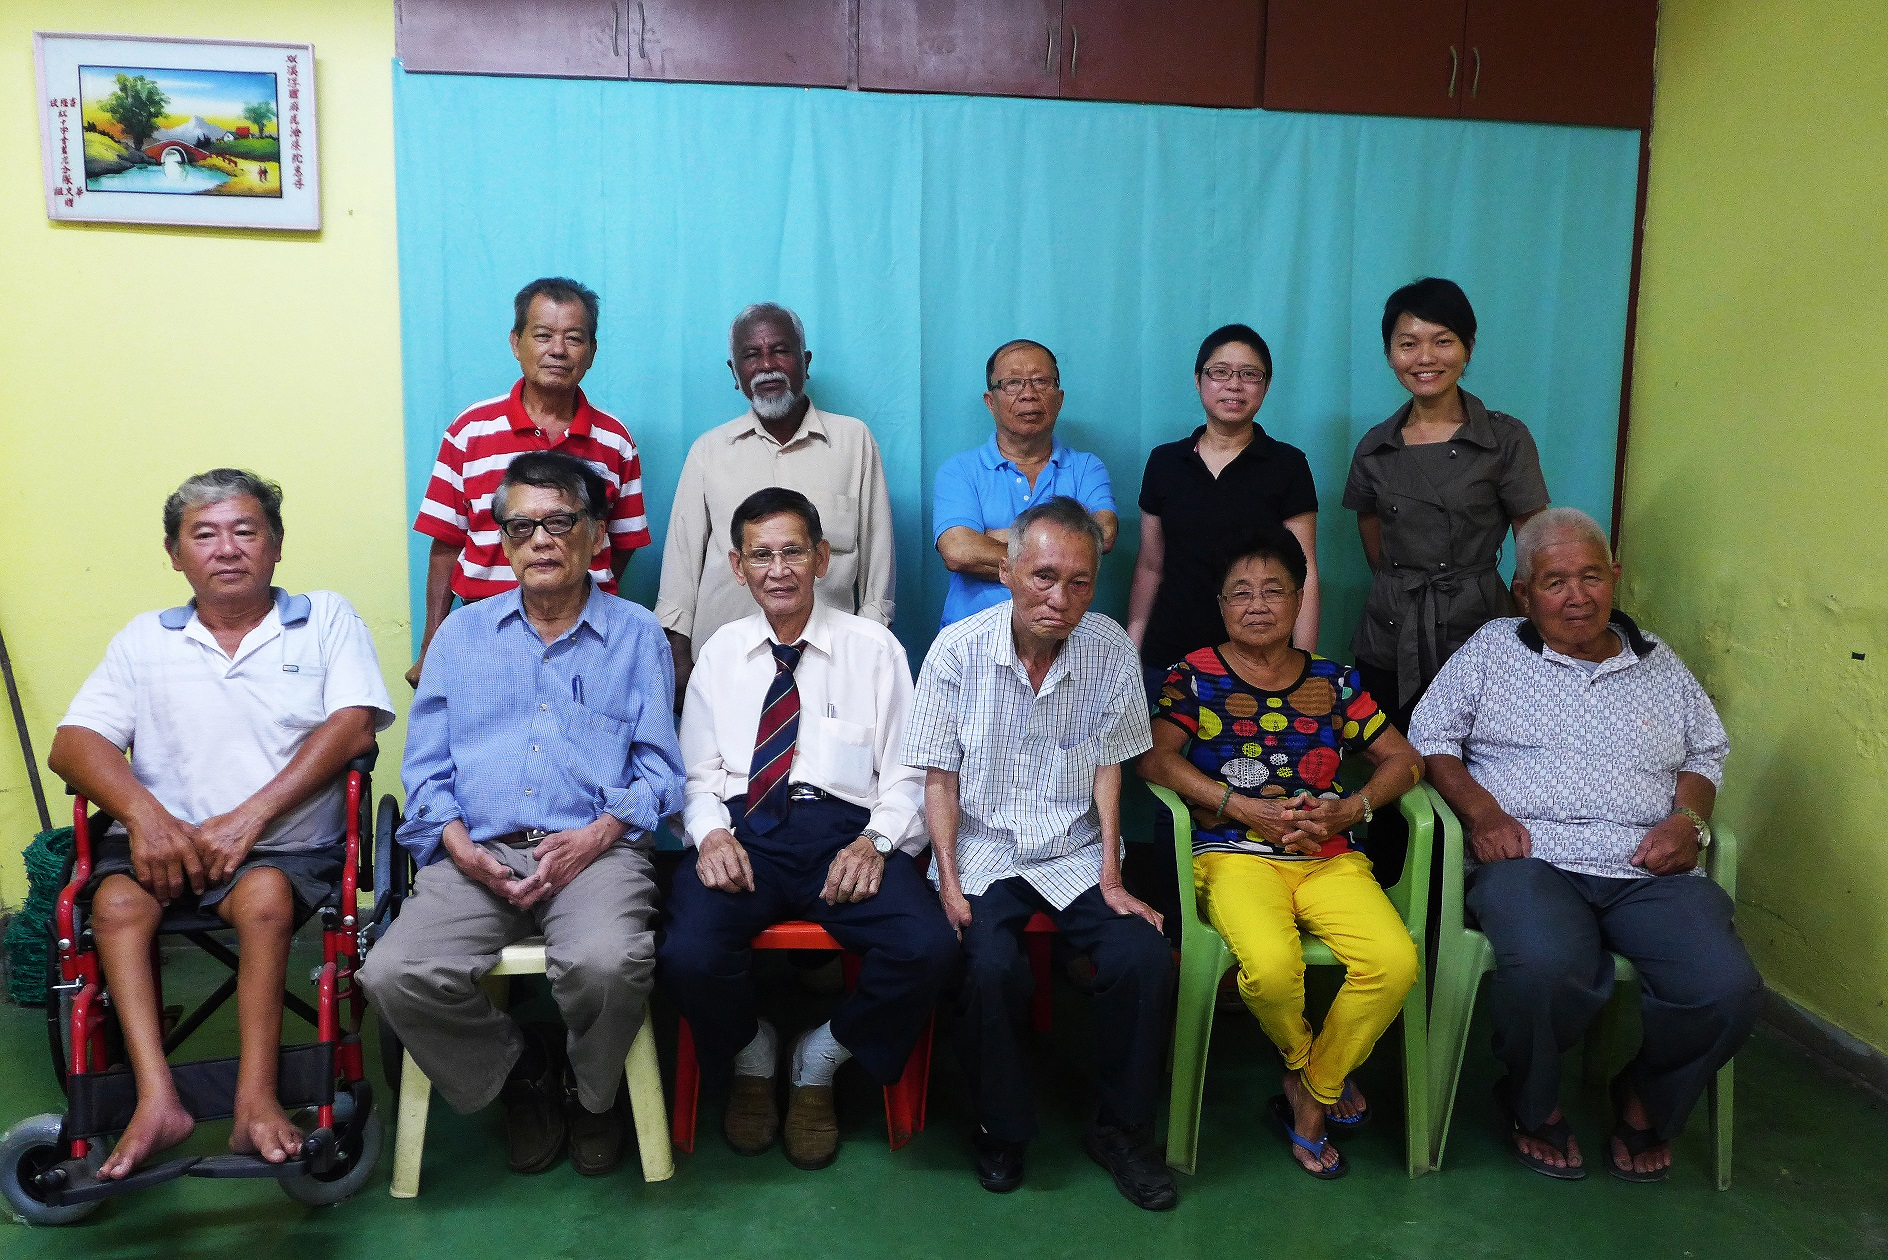 Committee of the Sungai Buloh Settlement Council, 2015. (photo by Lim Mei Kim)